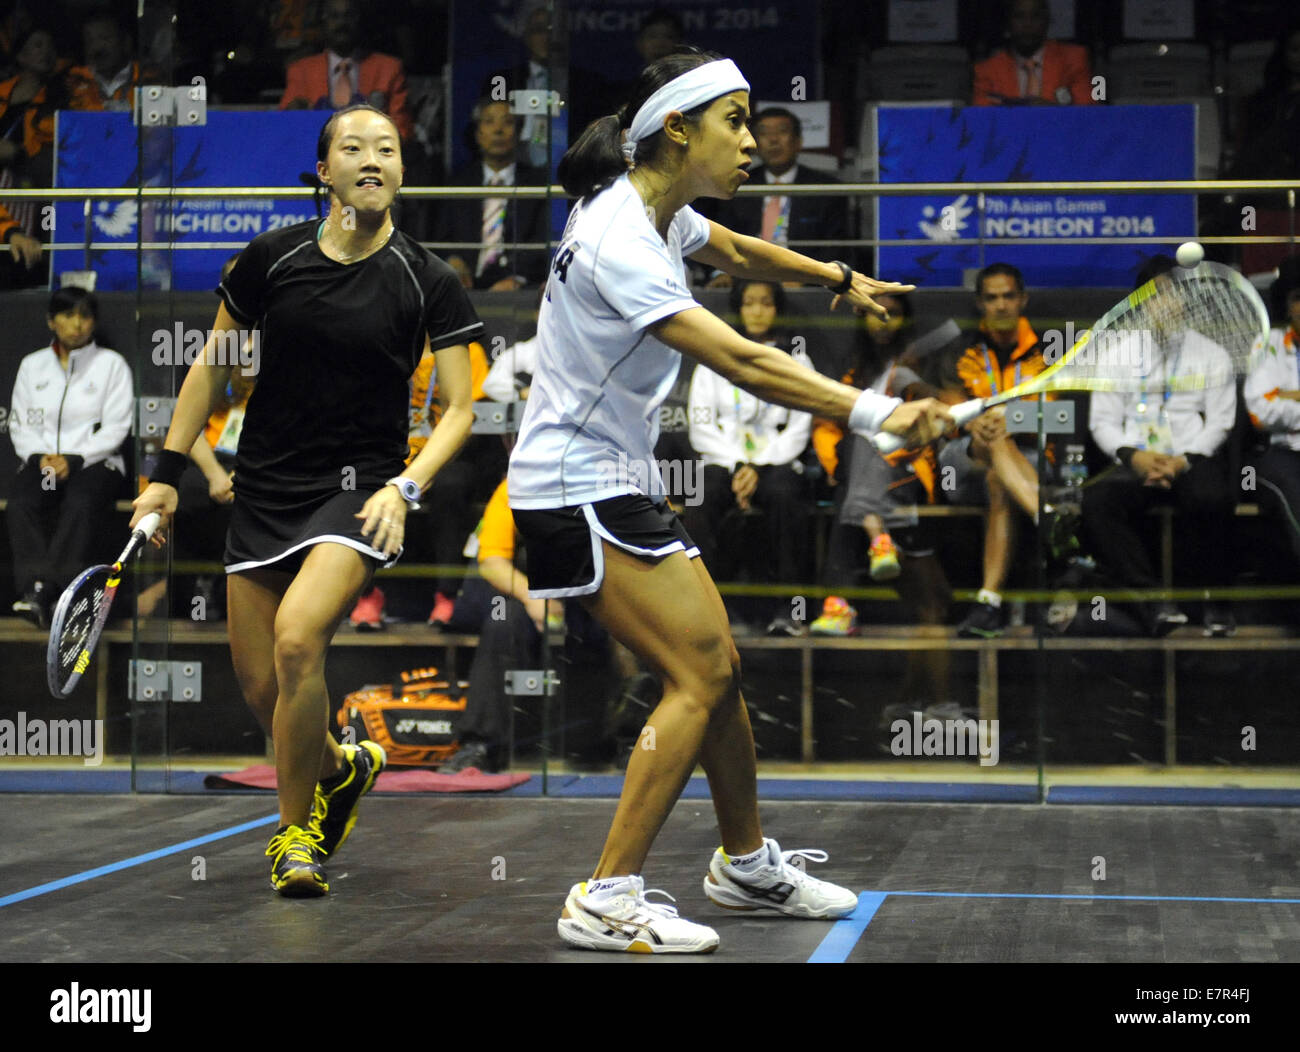 Incheon, South Korea. 23rd Sep, 2014. David Nicol Ann (R) of Malaysia plays a shot against her teammate Low Wee - Stock Image